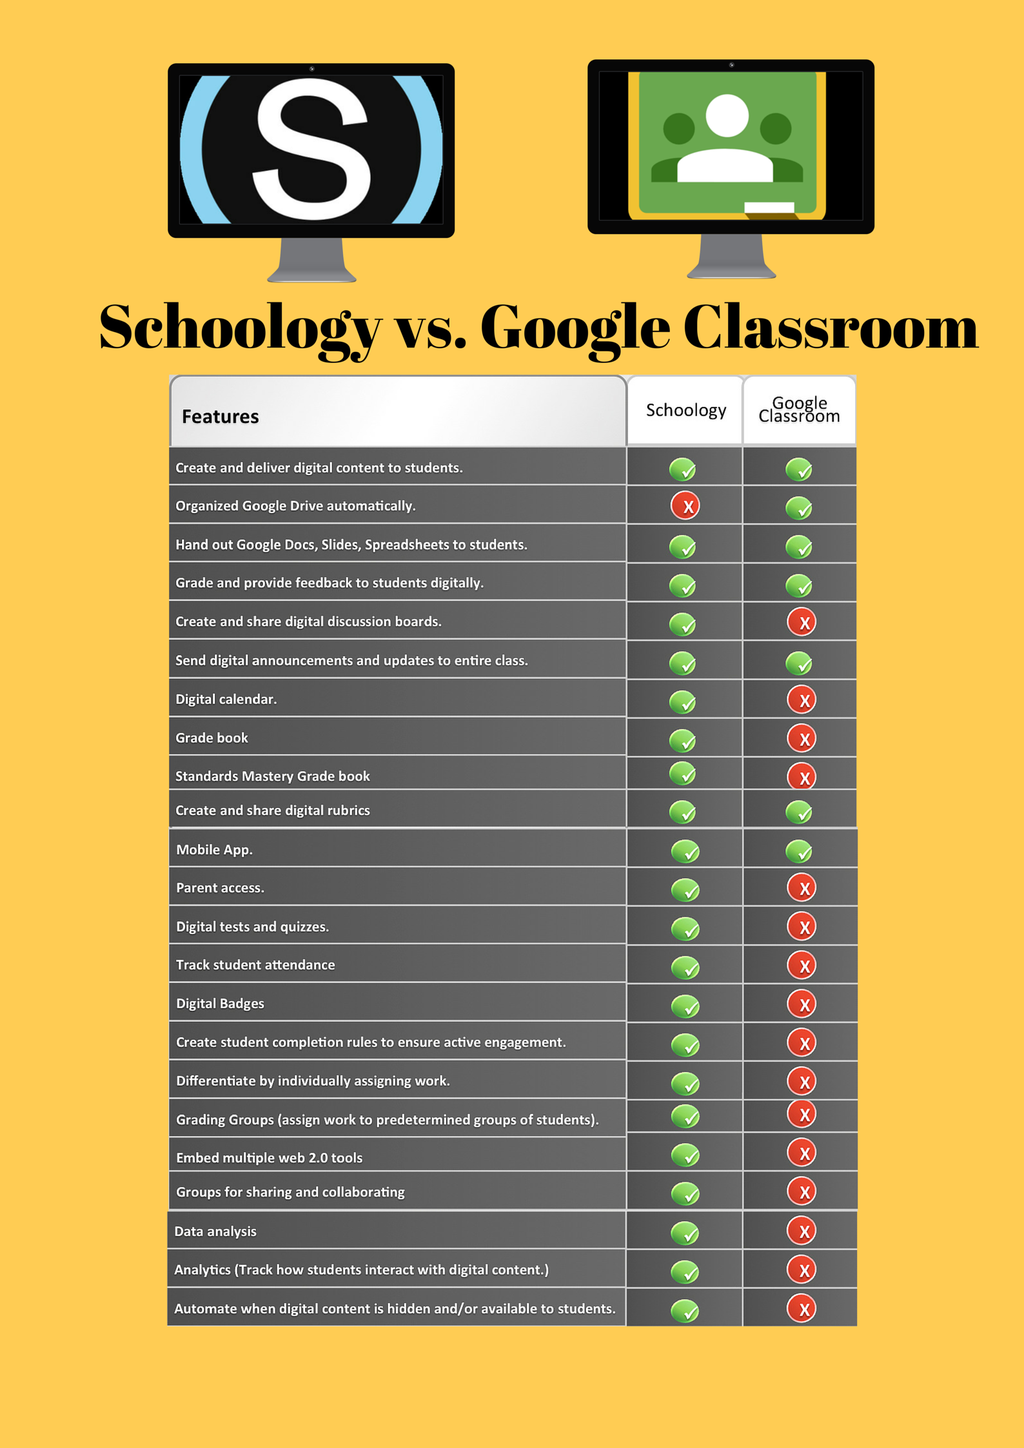 """Great comparison graphic showing similarities and differences between Google Classroom and @Schoology"" Image and text via @mrnultisanerd on Twitter. Thanks for sharing! Check out what else Schoology has to offer: http://t.sch.gy/HEMsG"